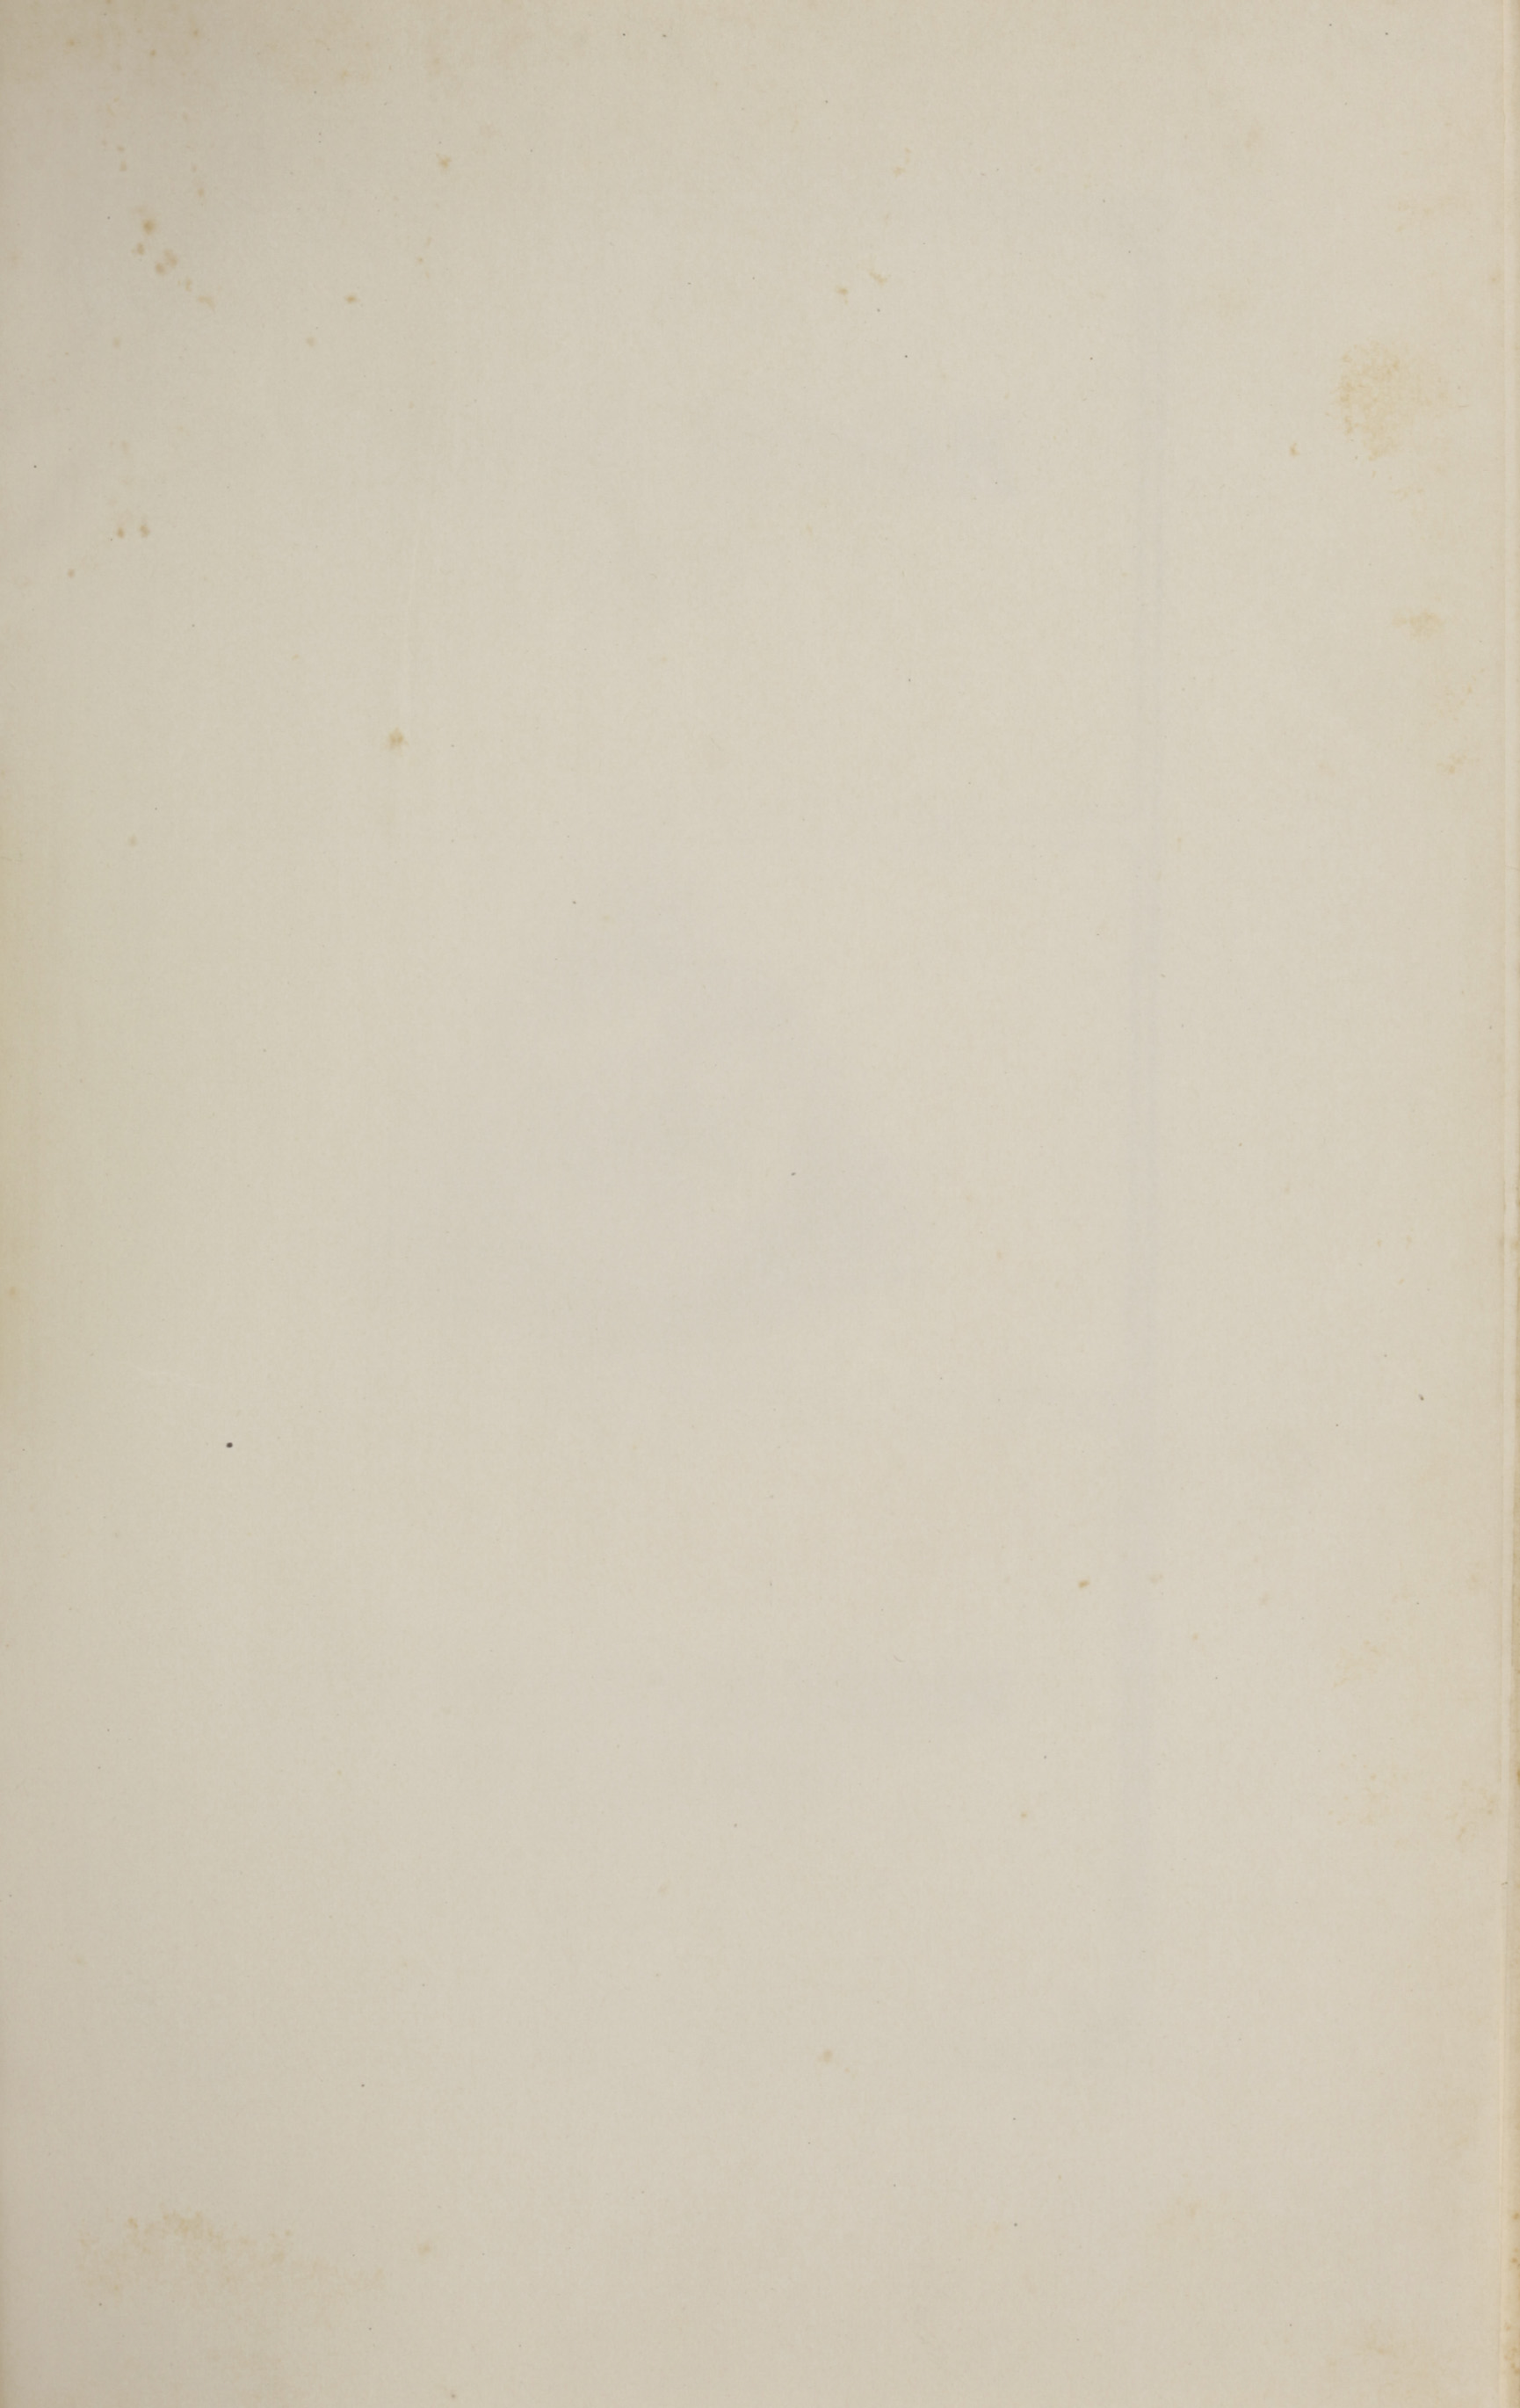 Charleston Yearbook, 1914, blank page